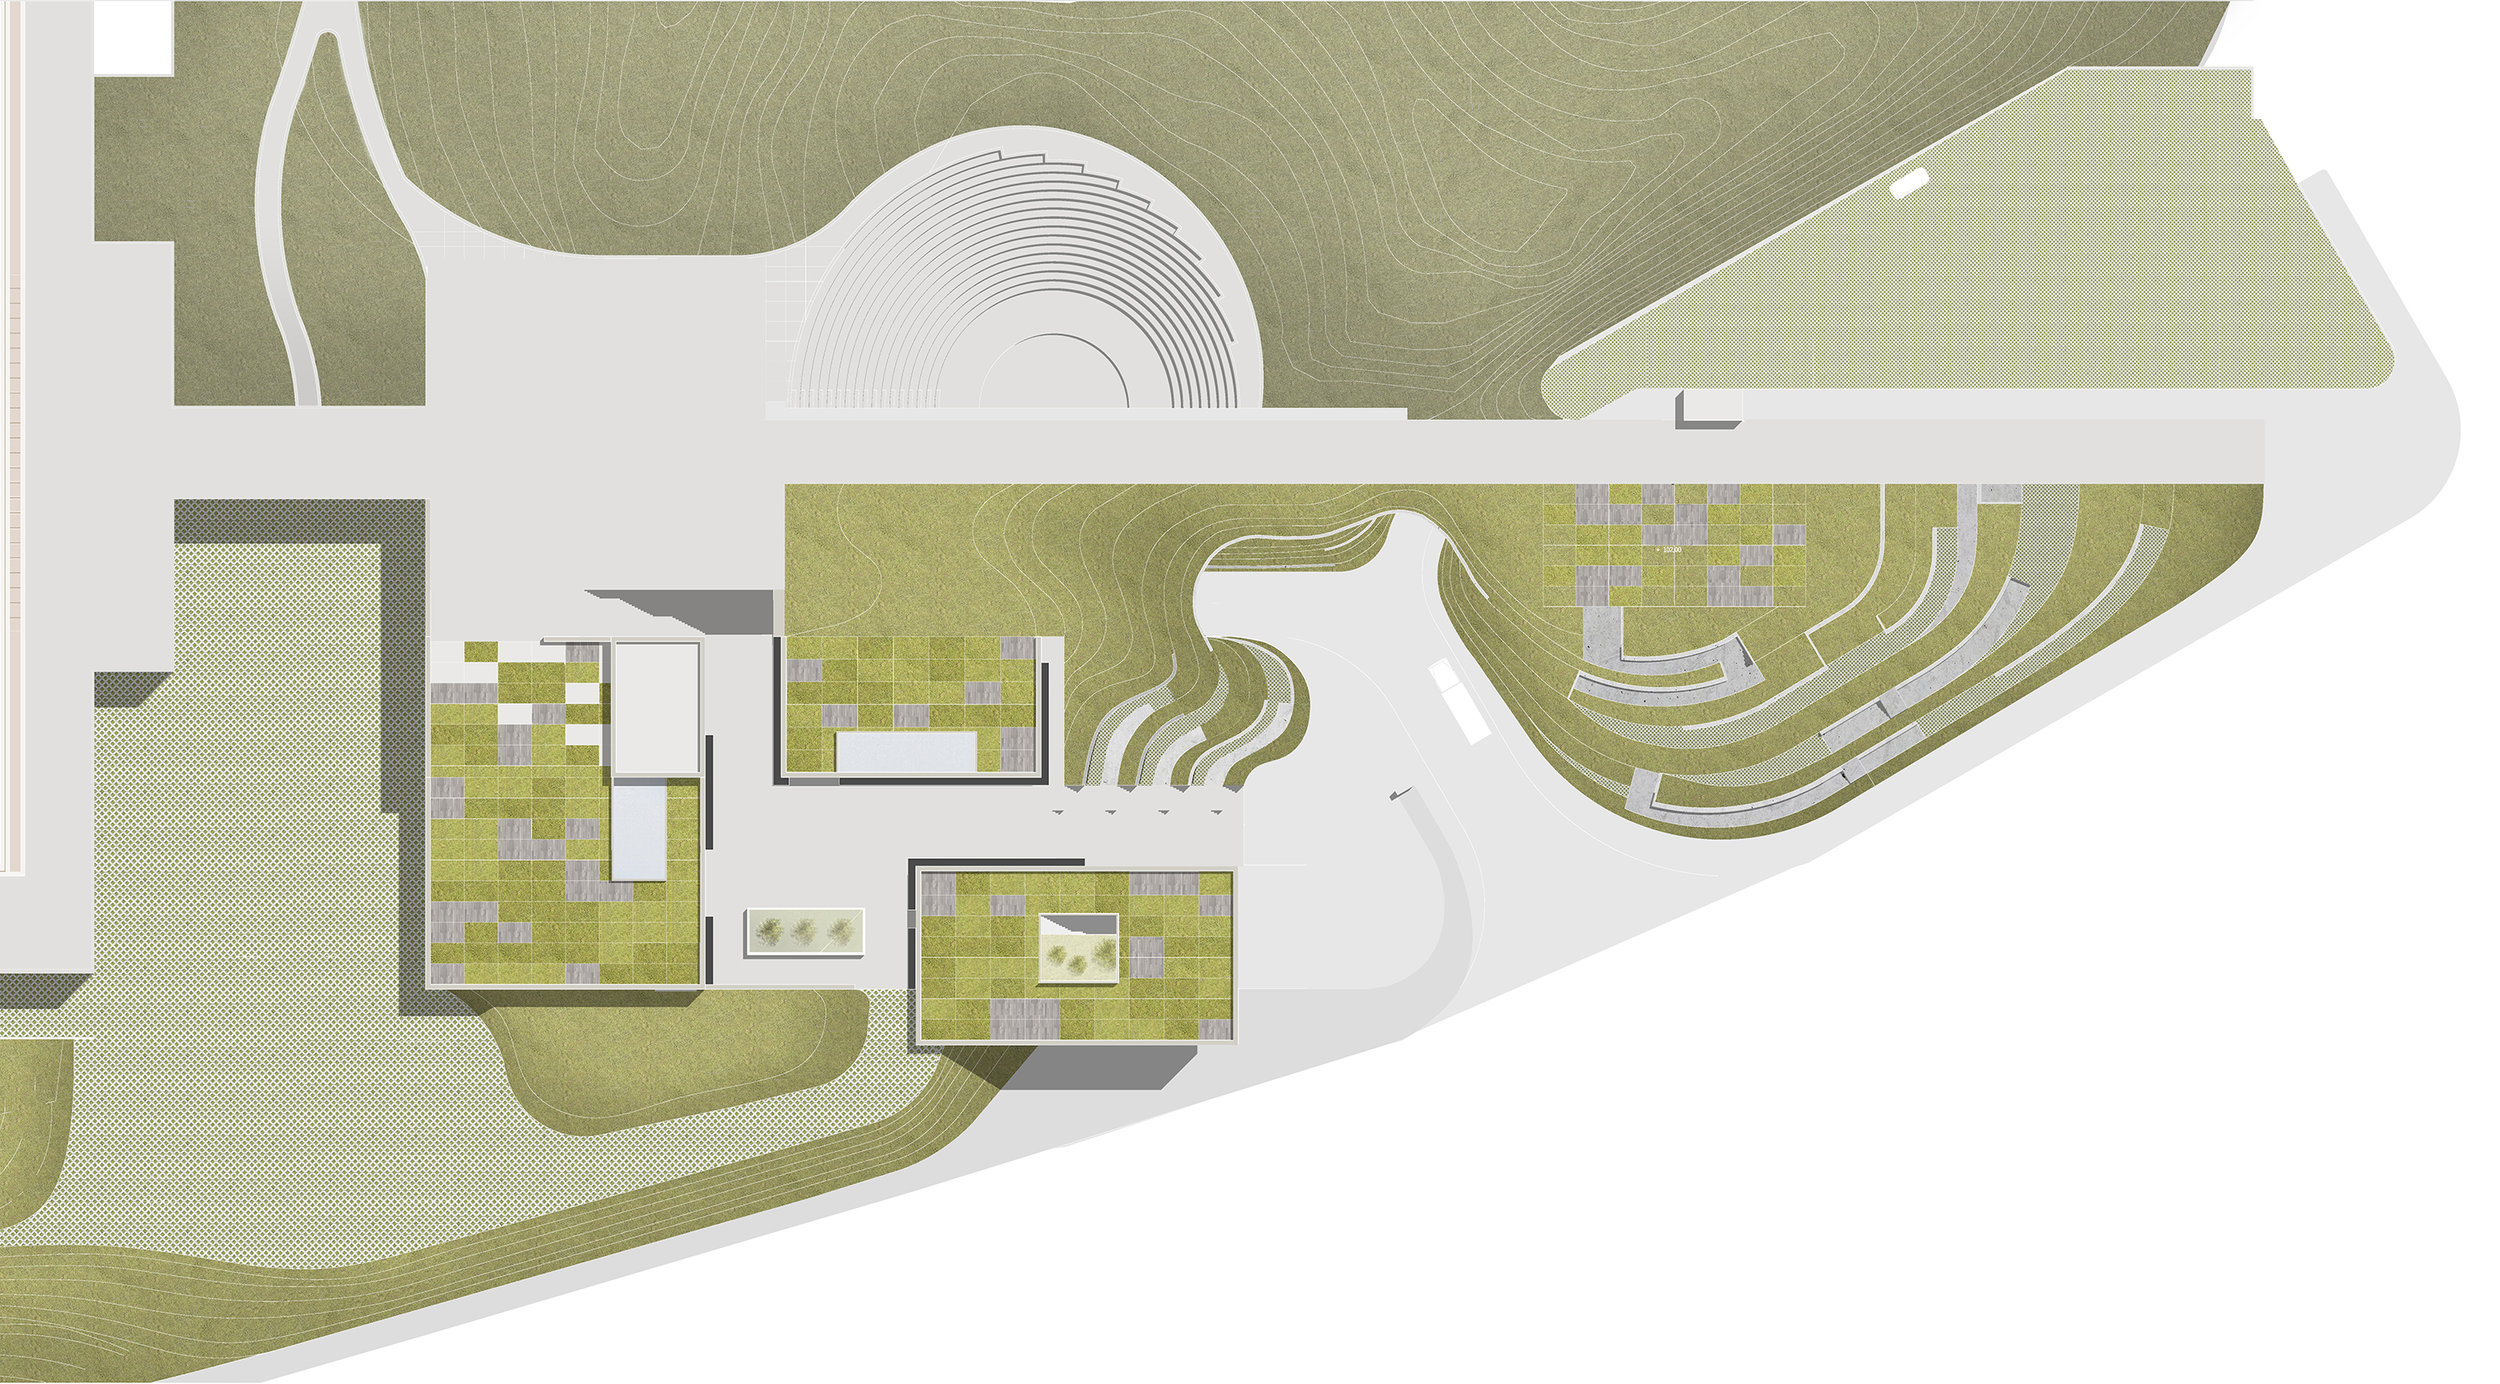 Chuncheon Museum | 국립춘천박물관 복합어린이문화관   3rd prize winner of Chuncheon National Museum Annex competition entry. Innovative landform design is proposed to be a new platform of cultural education, exchange, and leisure activities.